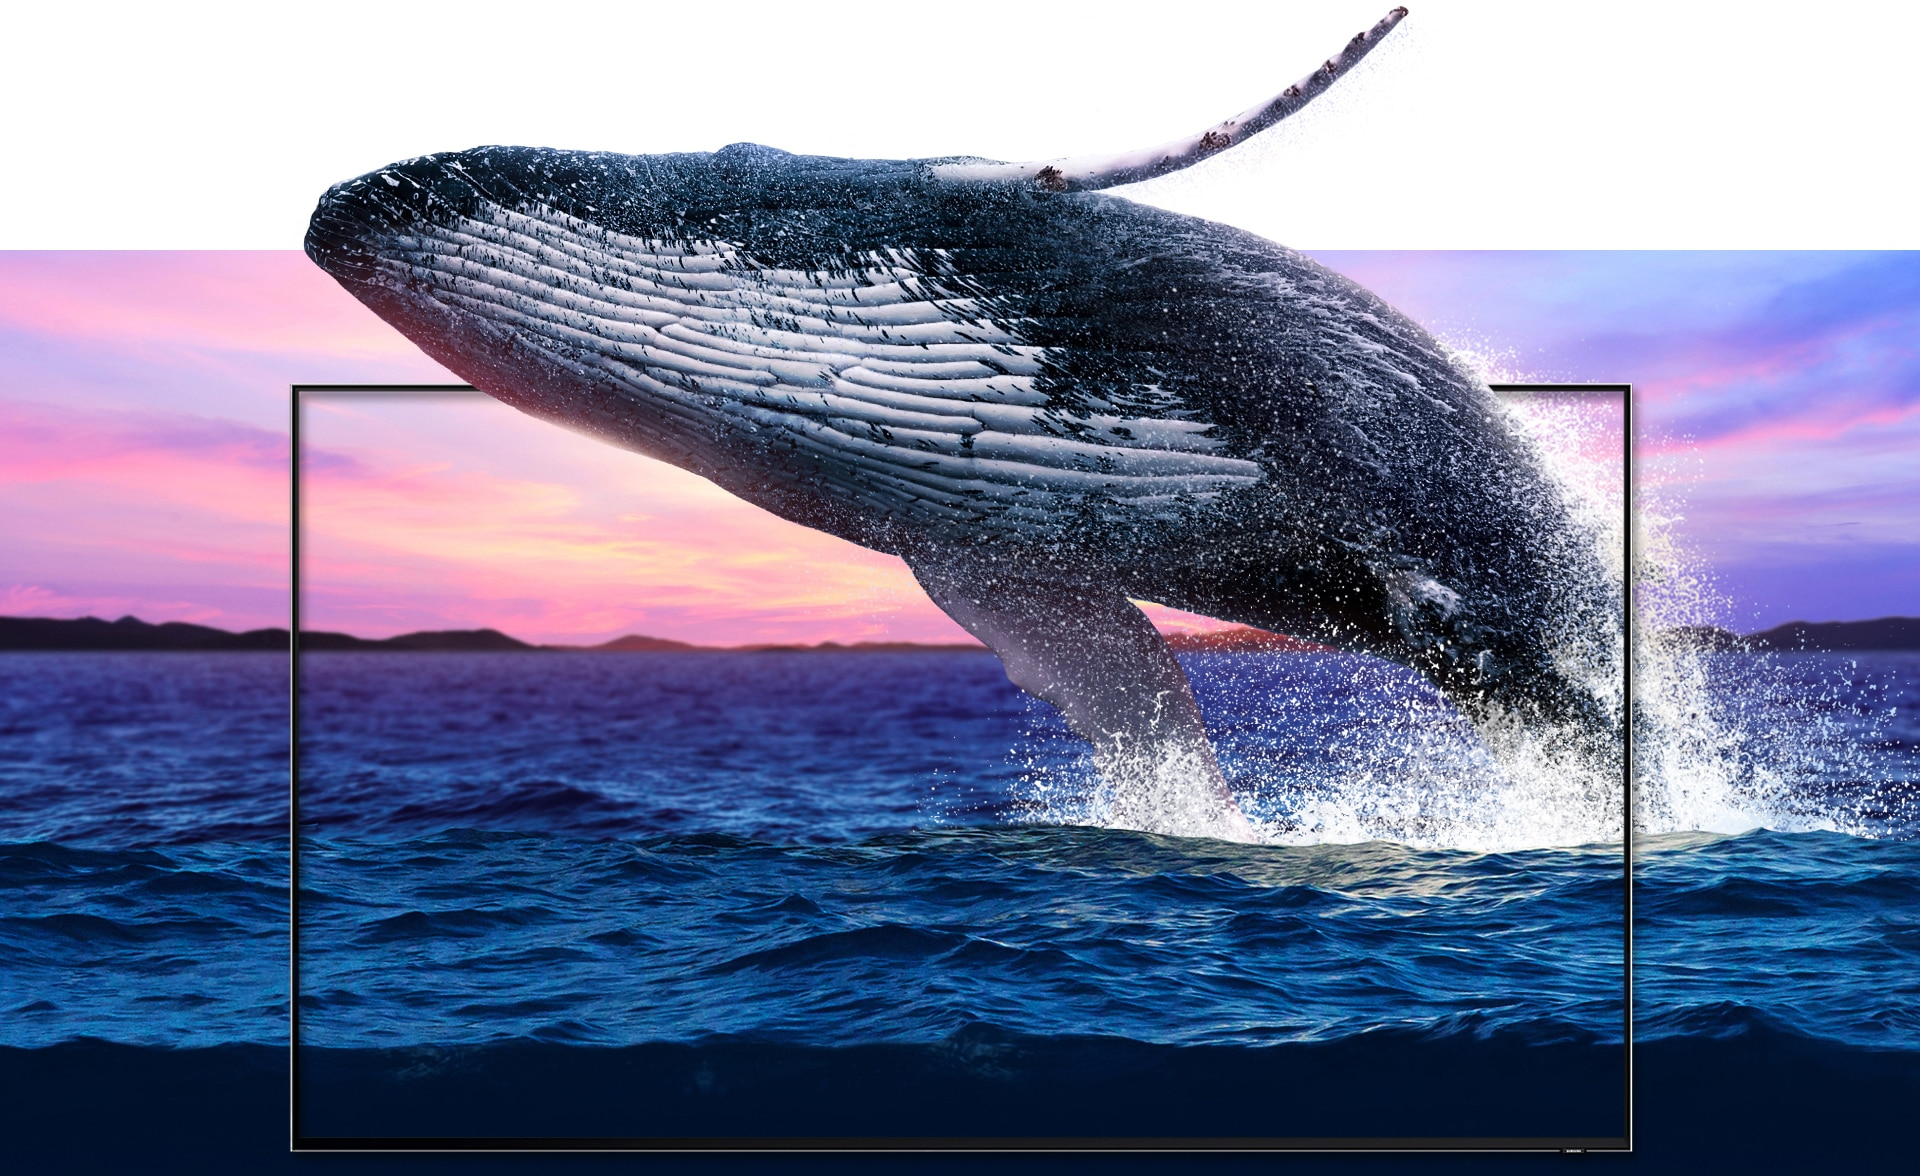 A vibrant seascape juxtaposed with a new QLED TV frame set in the middle, through which a large humpback whale leaps as it emerges from the ocean. The waves and details of the whale are shown in a detail equalling that of real life.